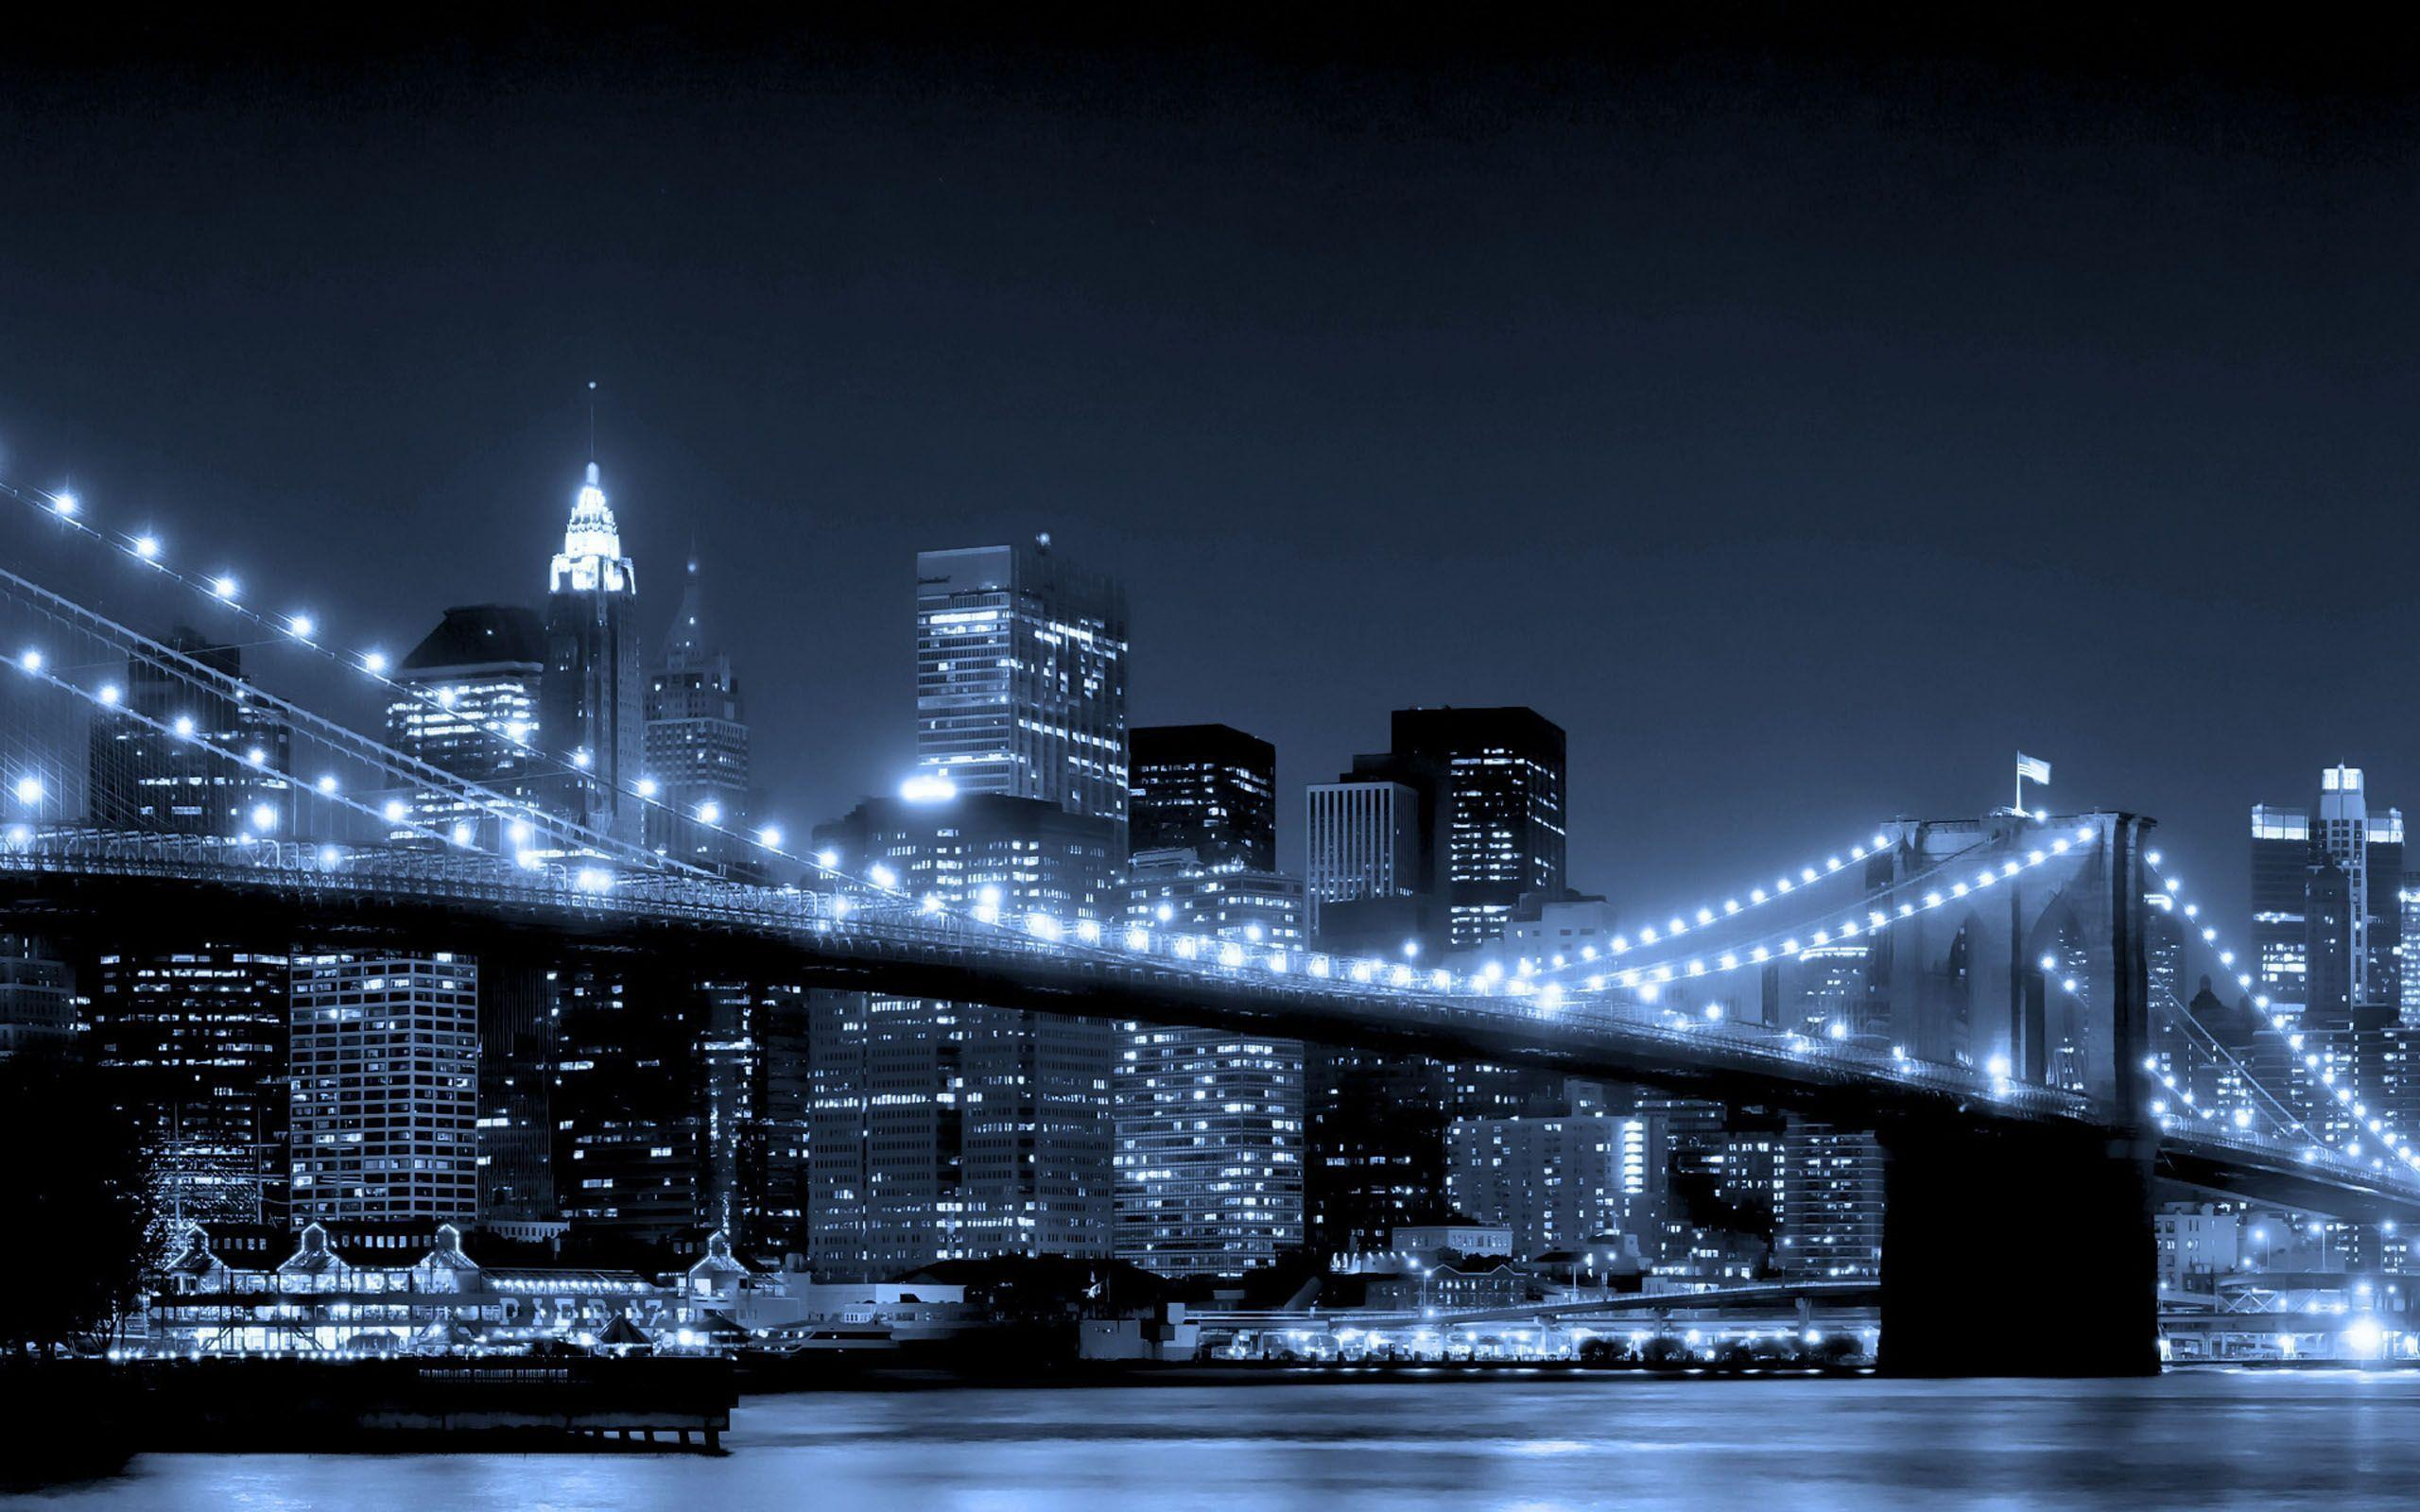 Image For > New York City Wallpapers At Night